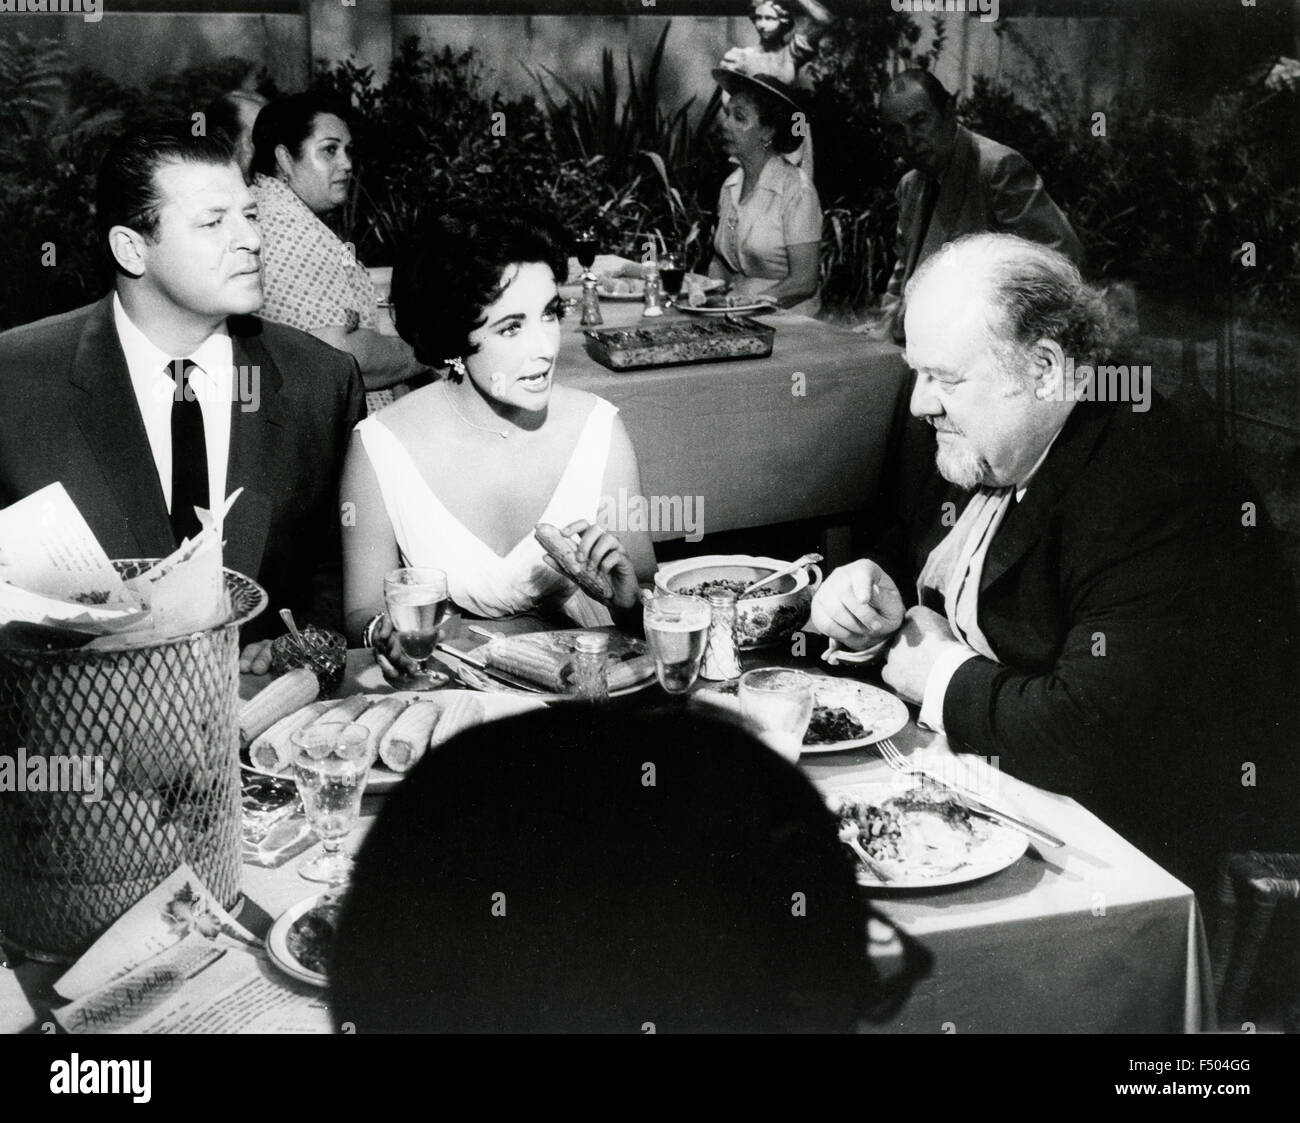 The actors Elizabeth Taylor, Burl Ives and Jack Carson in a scene from the film 'Cat on a Hot Tin Roof', - Stock Image